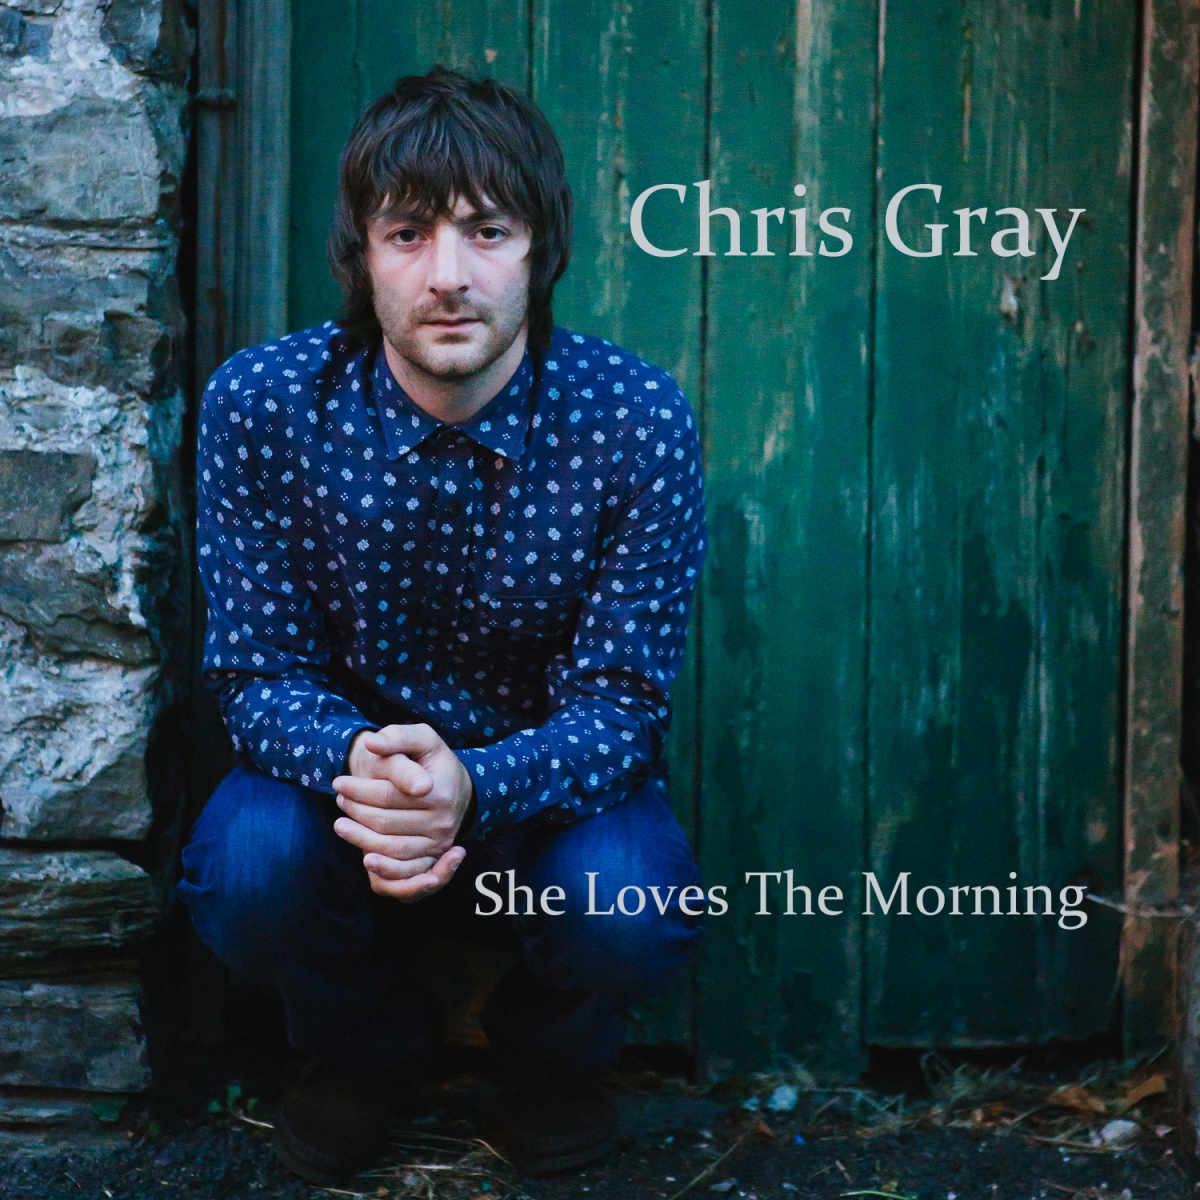 Chris Gray - She Loves the Morning - 2015